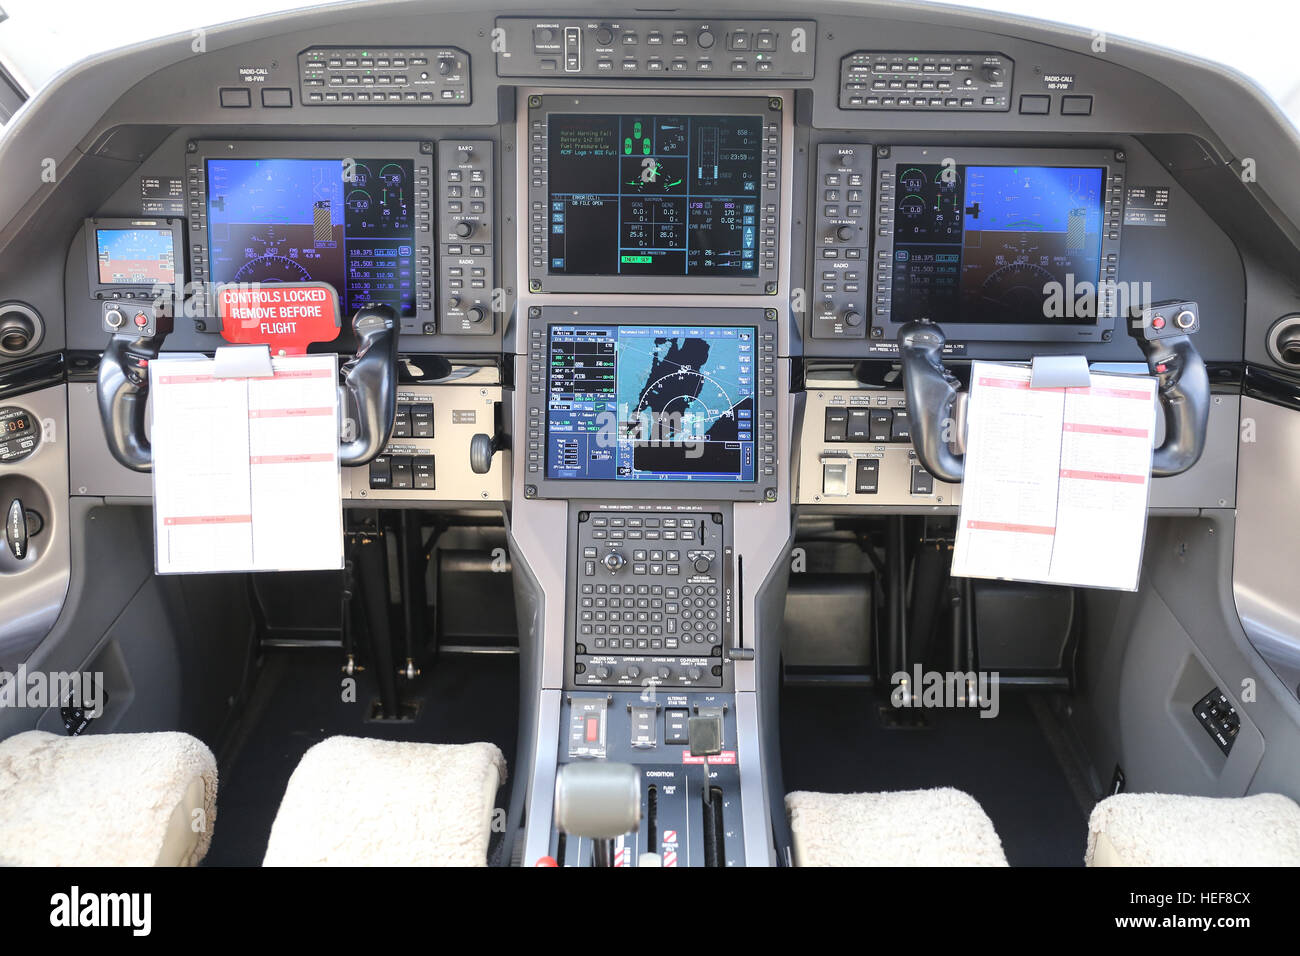 Controls in Cockpit of a Turboprop Airplane - Stock Image